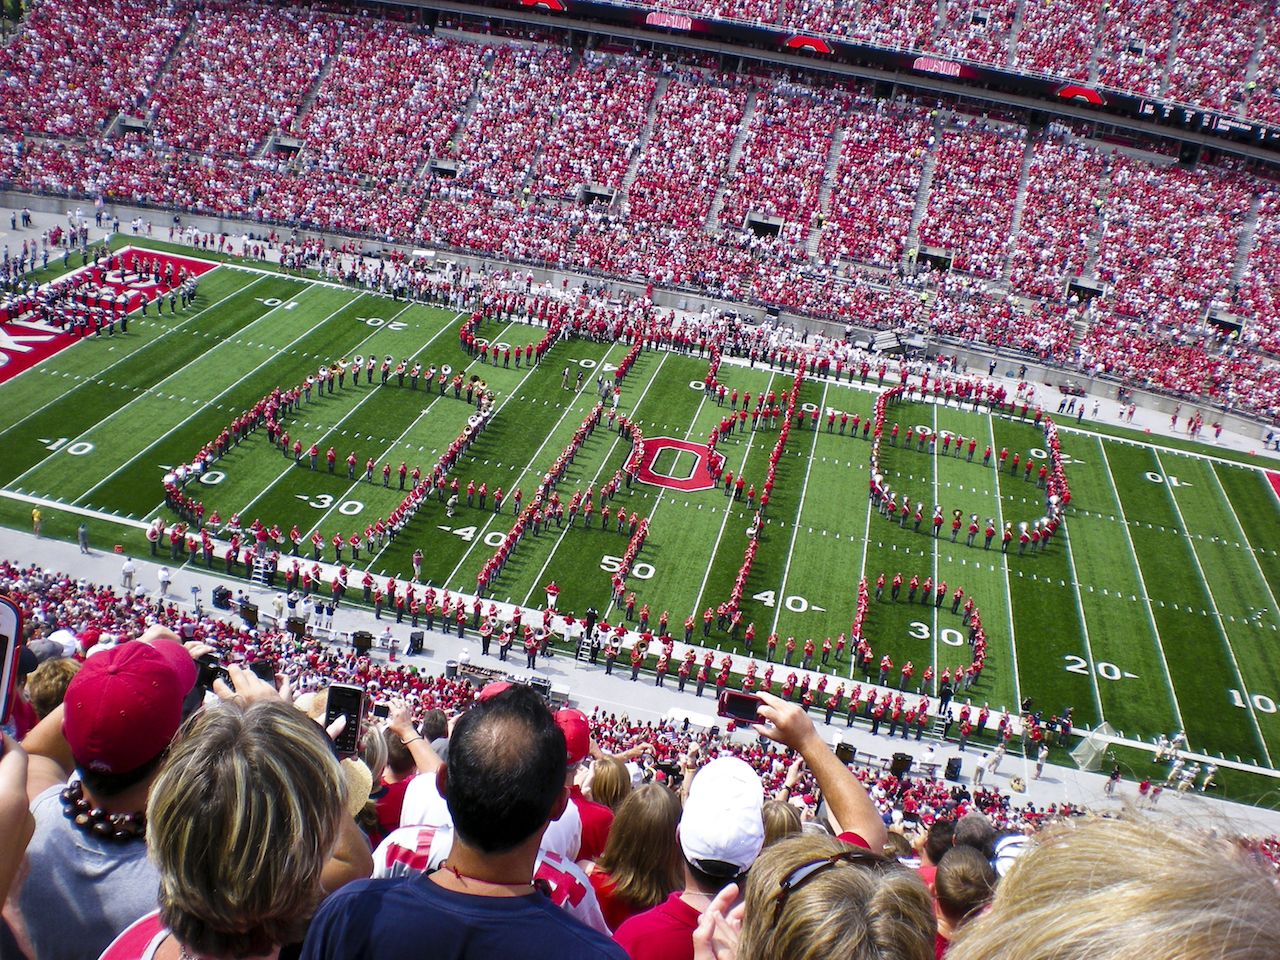 Ohio State football stadium with marching band on the field